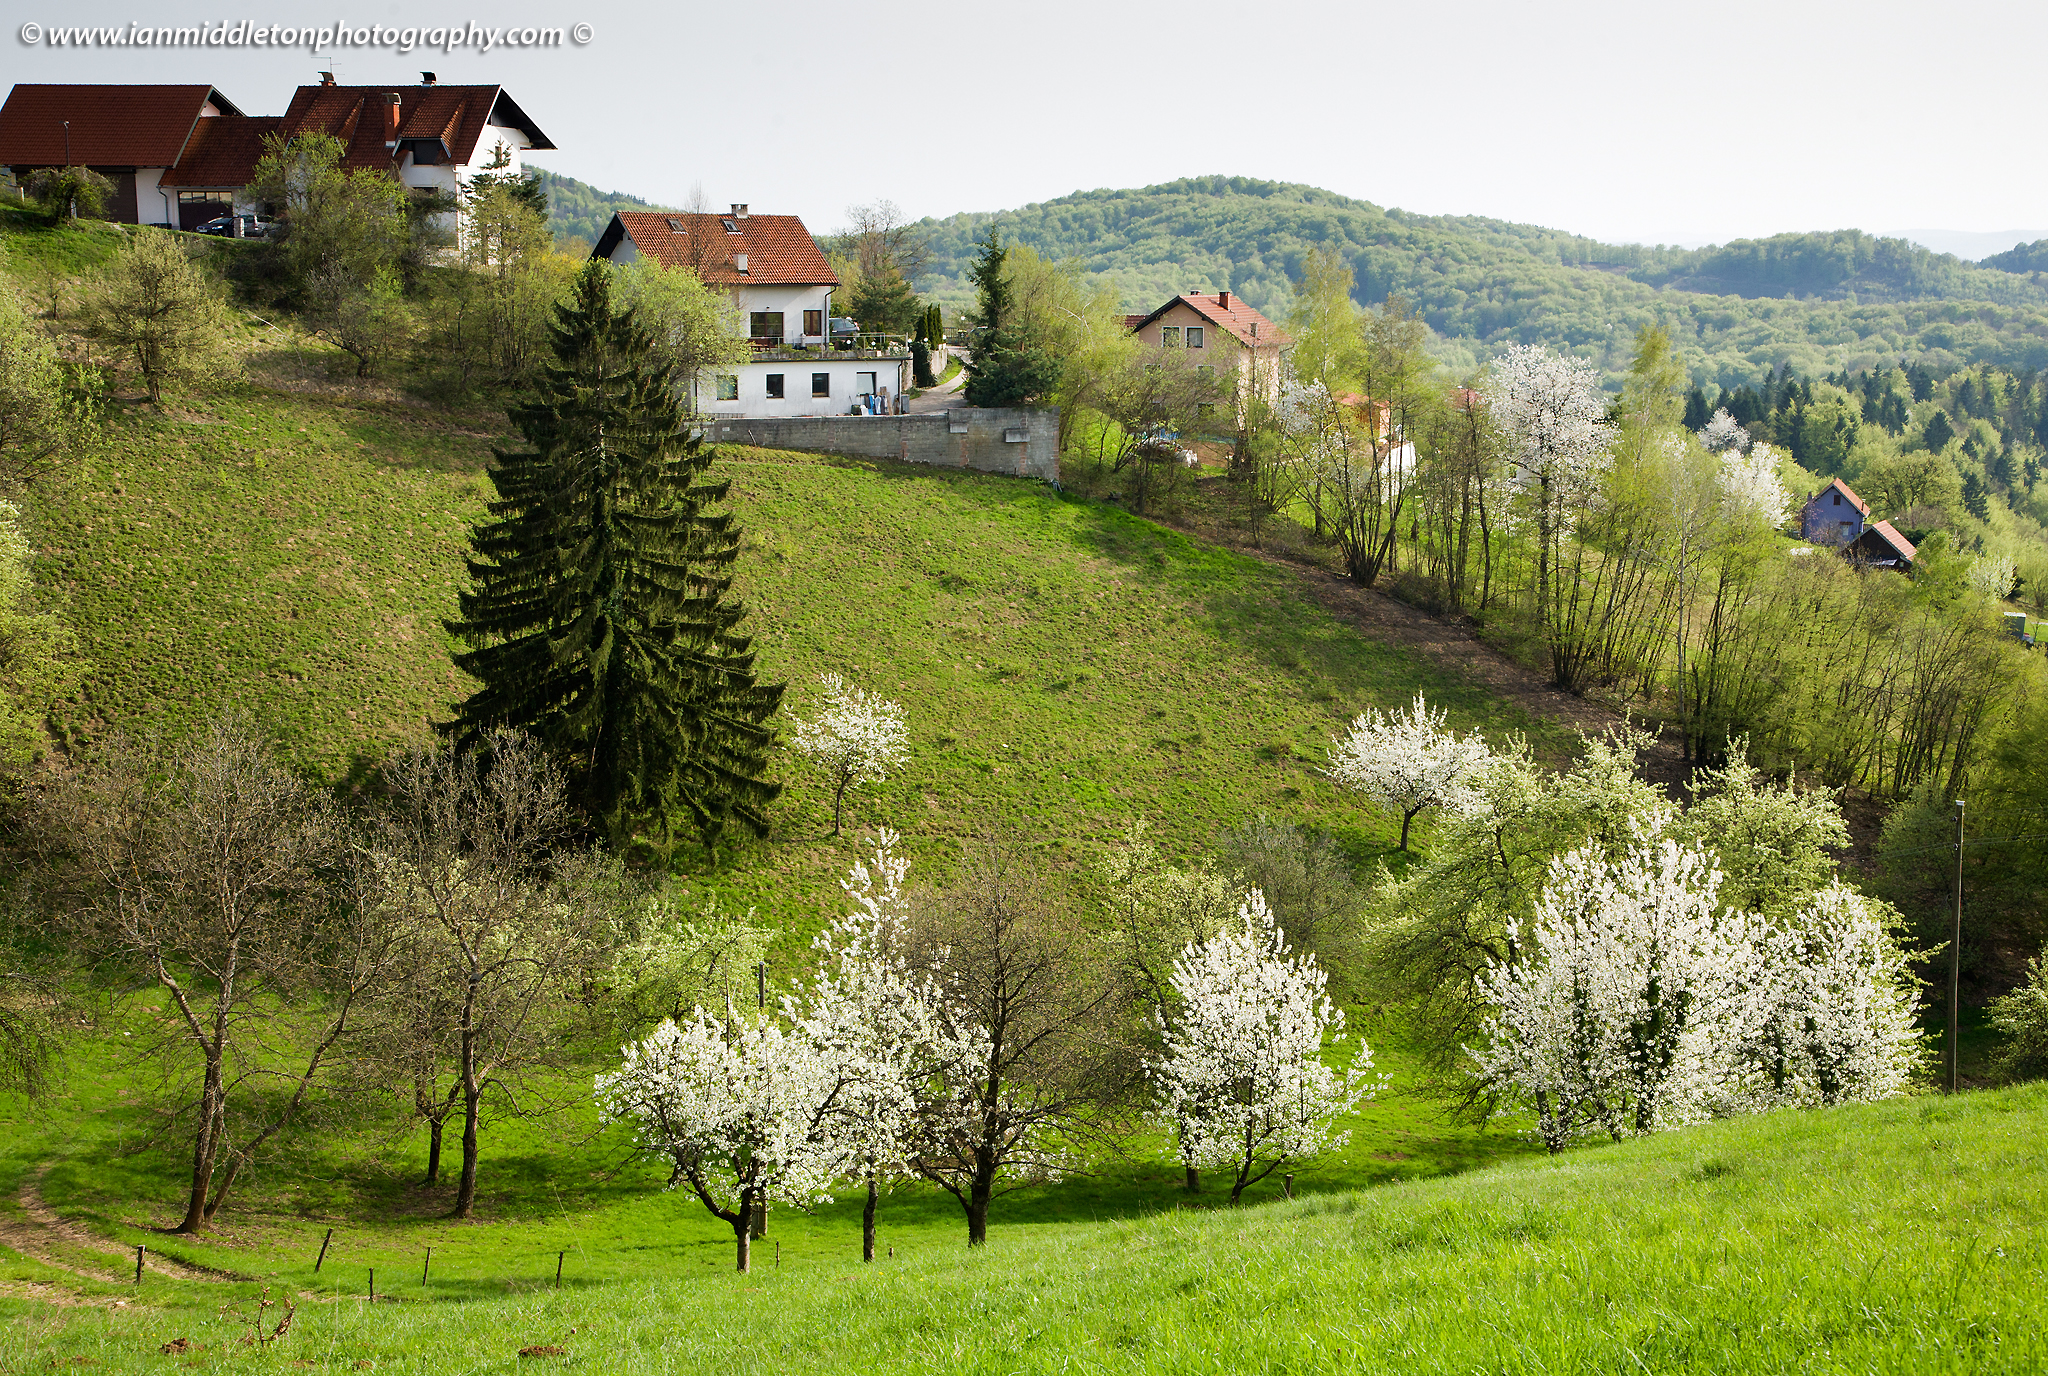 Trees blossoming in Spring near Volavlje in the Jance hills to the east of Ljubljana, Slovenia.